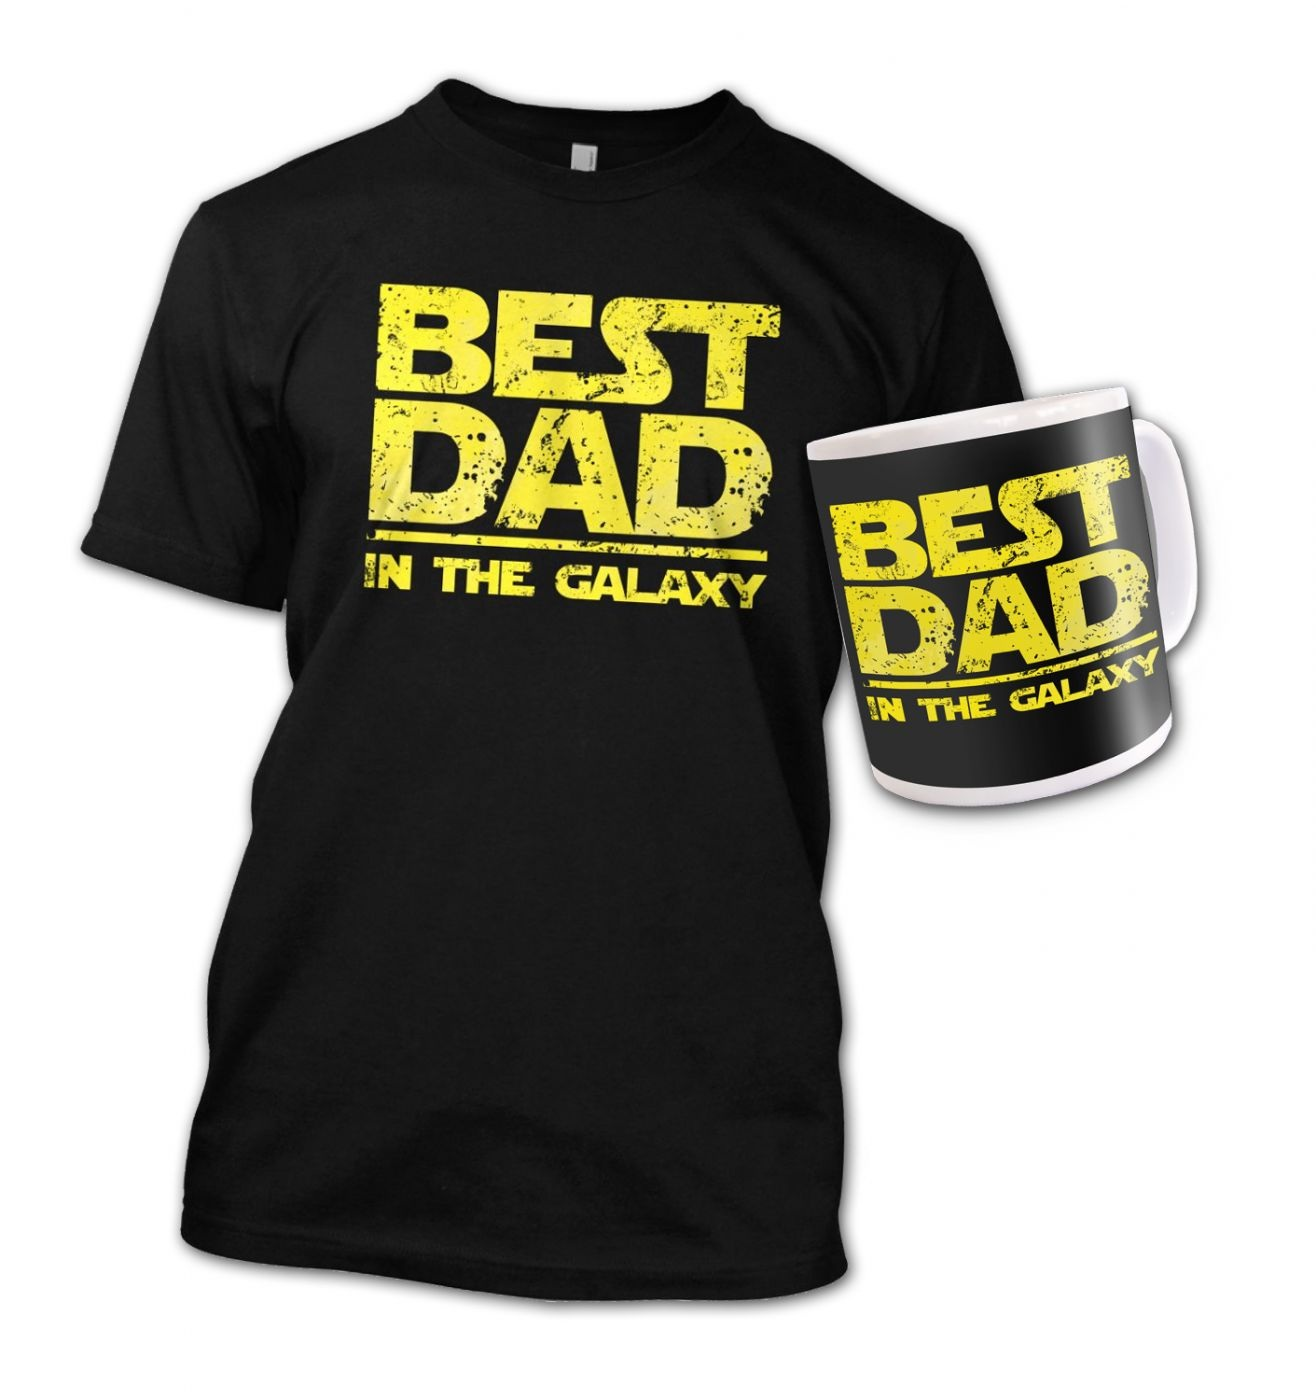 Best Dad In The Galaxy bundle (yellow detail)